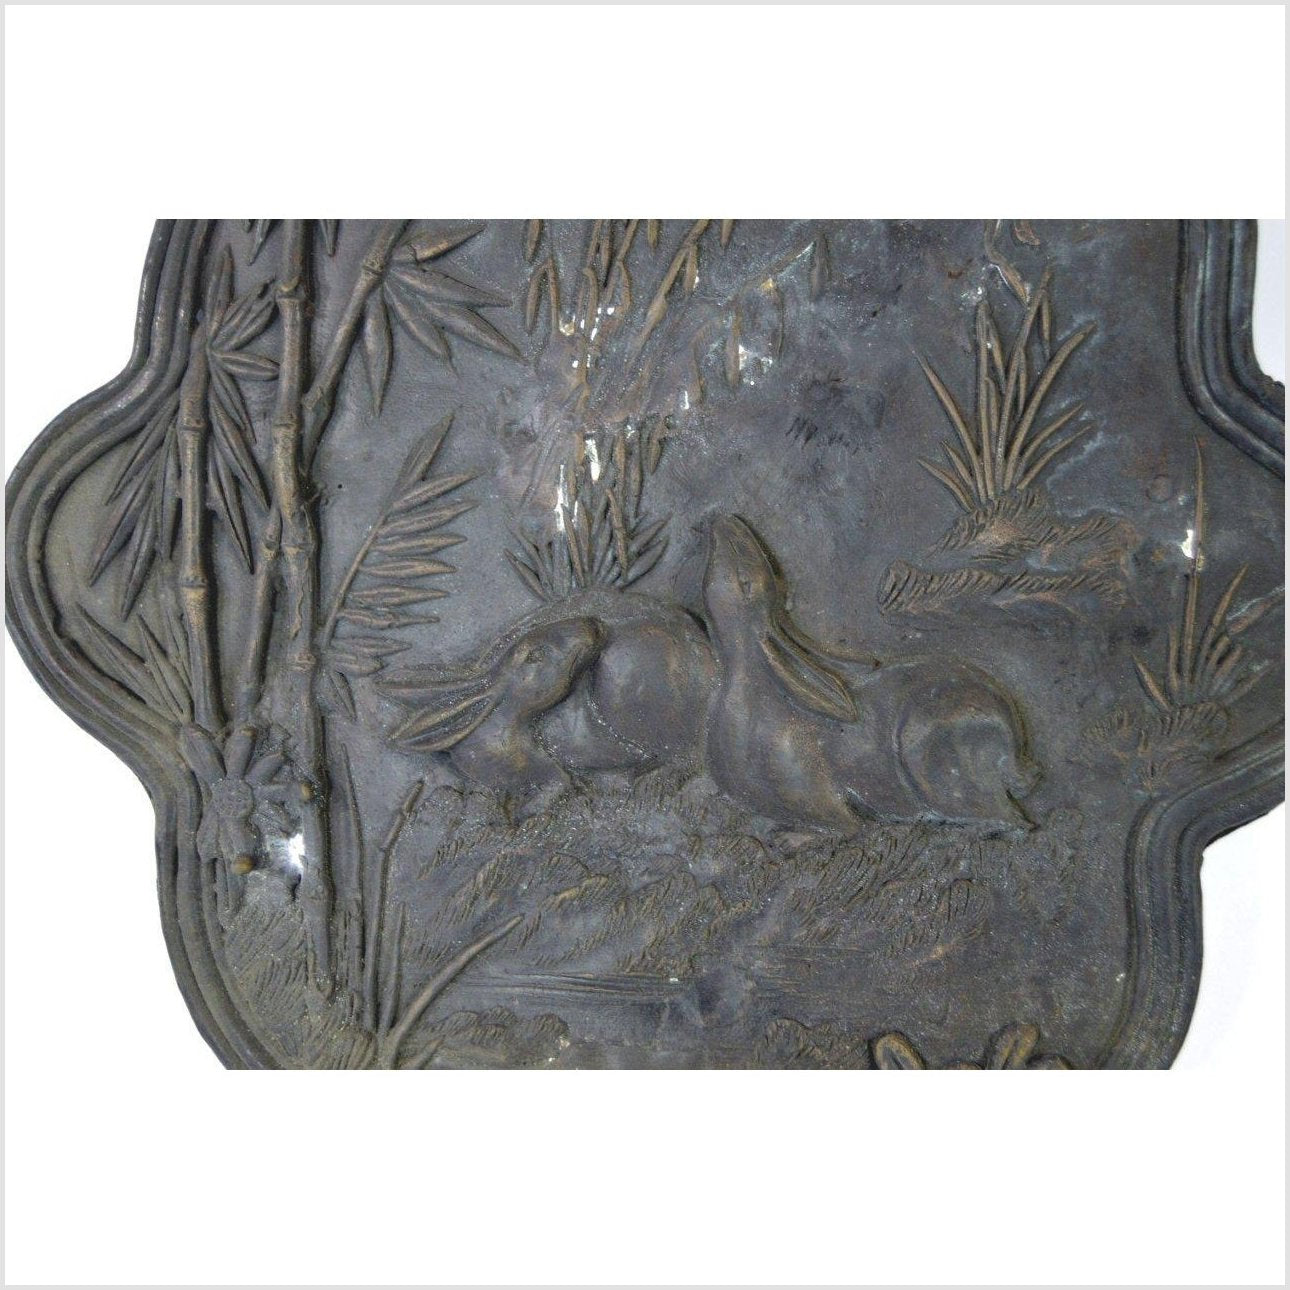 Bas-Relief Wall Plaque